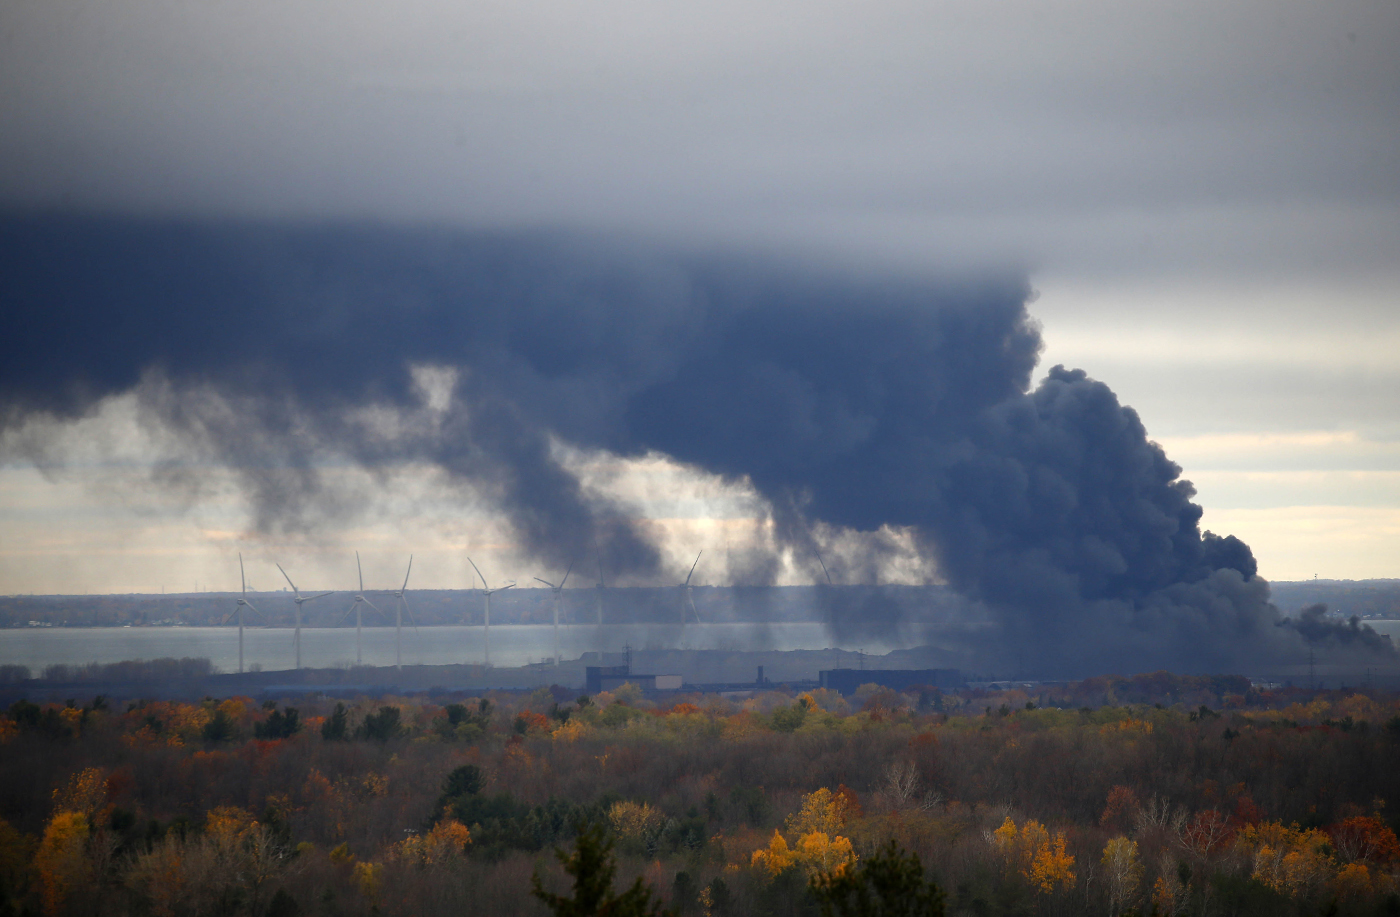 Thick, black smoke from the fire in Lackawanna was visible from Chestnut Ridge Park in Orchard Park on Wednesday, Nov. 9, 2016. (Mark Mulville/Buffalo News)